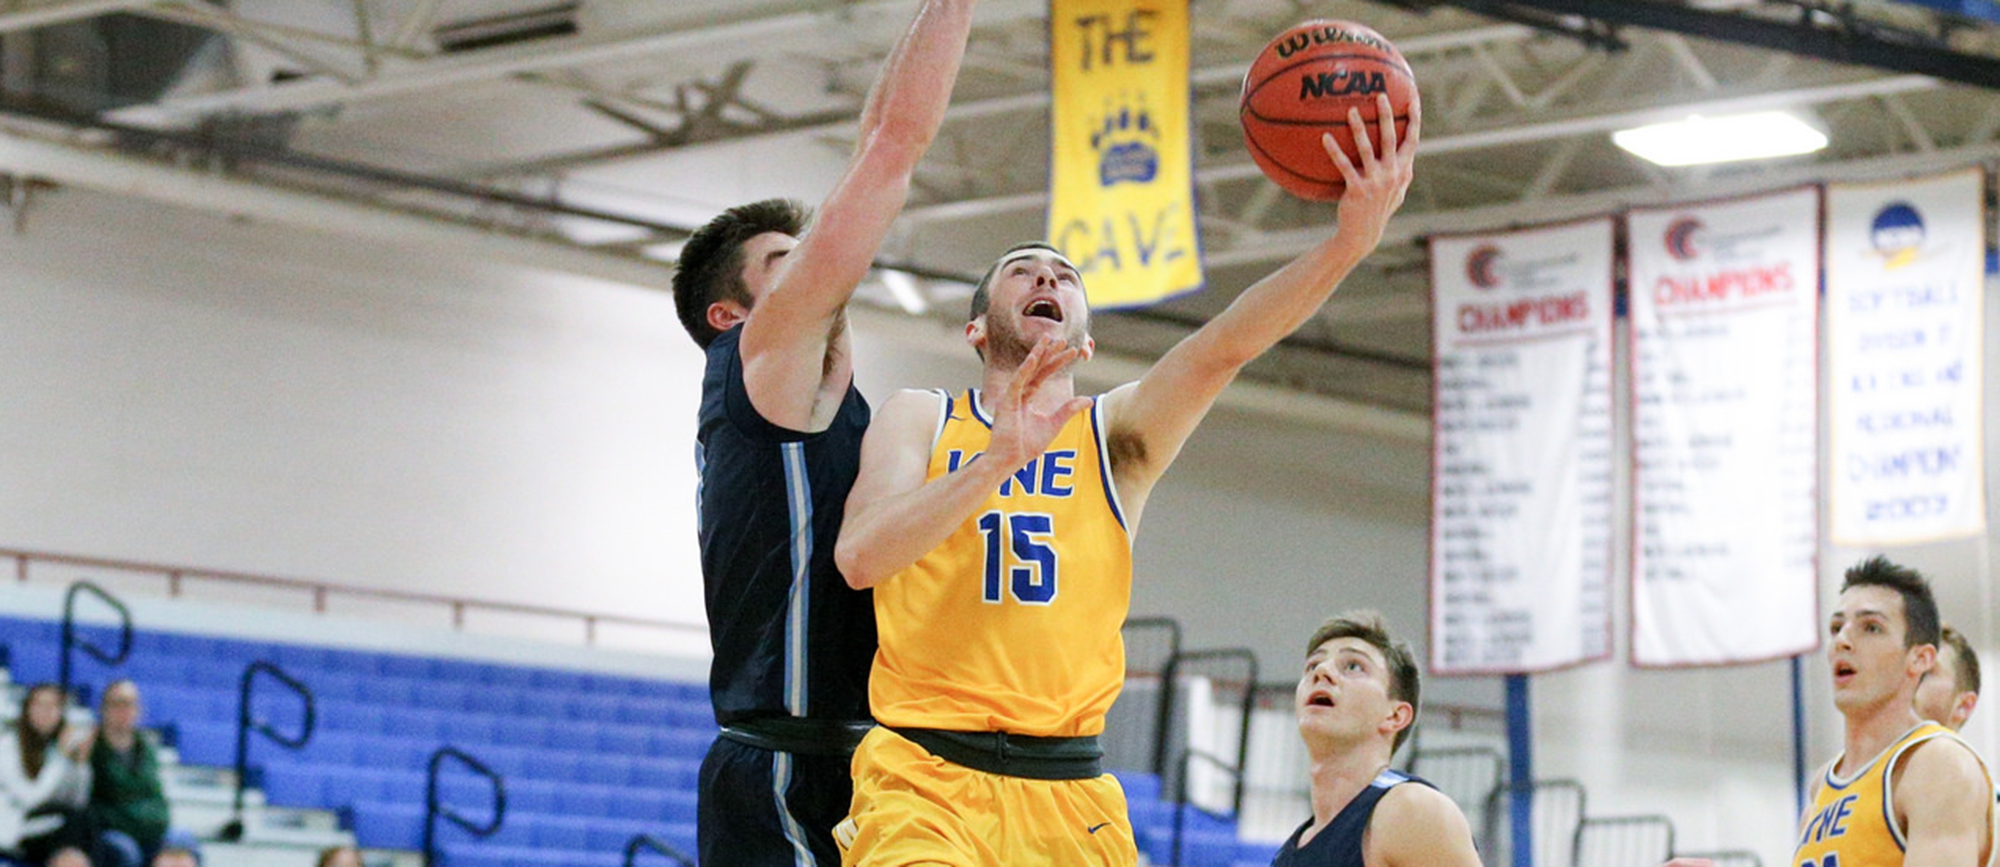 Junior Mike McGuire scored a team-high 20 points and added a career-best 11 rebounds in Western New England's 81-72 win over Southern Maine at the Trinity Holiday Invitational on Sunday night. (Photo by Chris Marion)